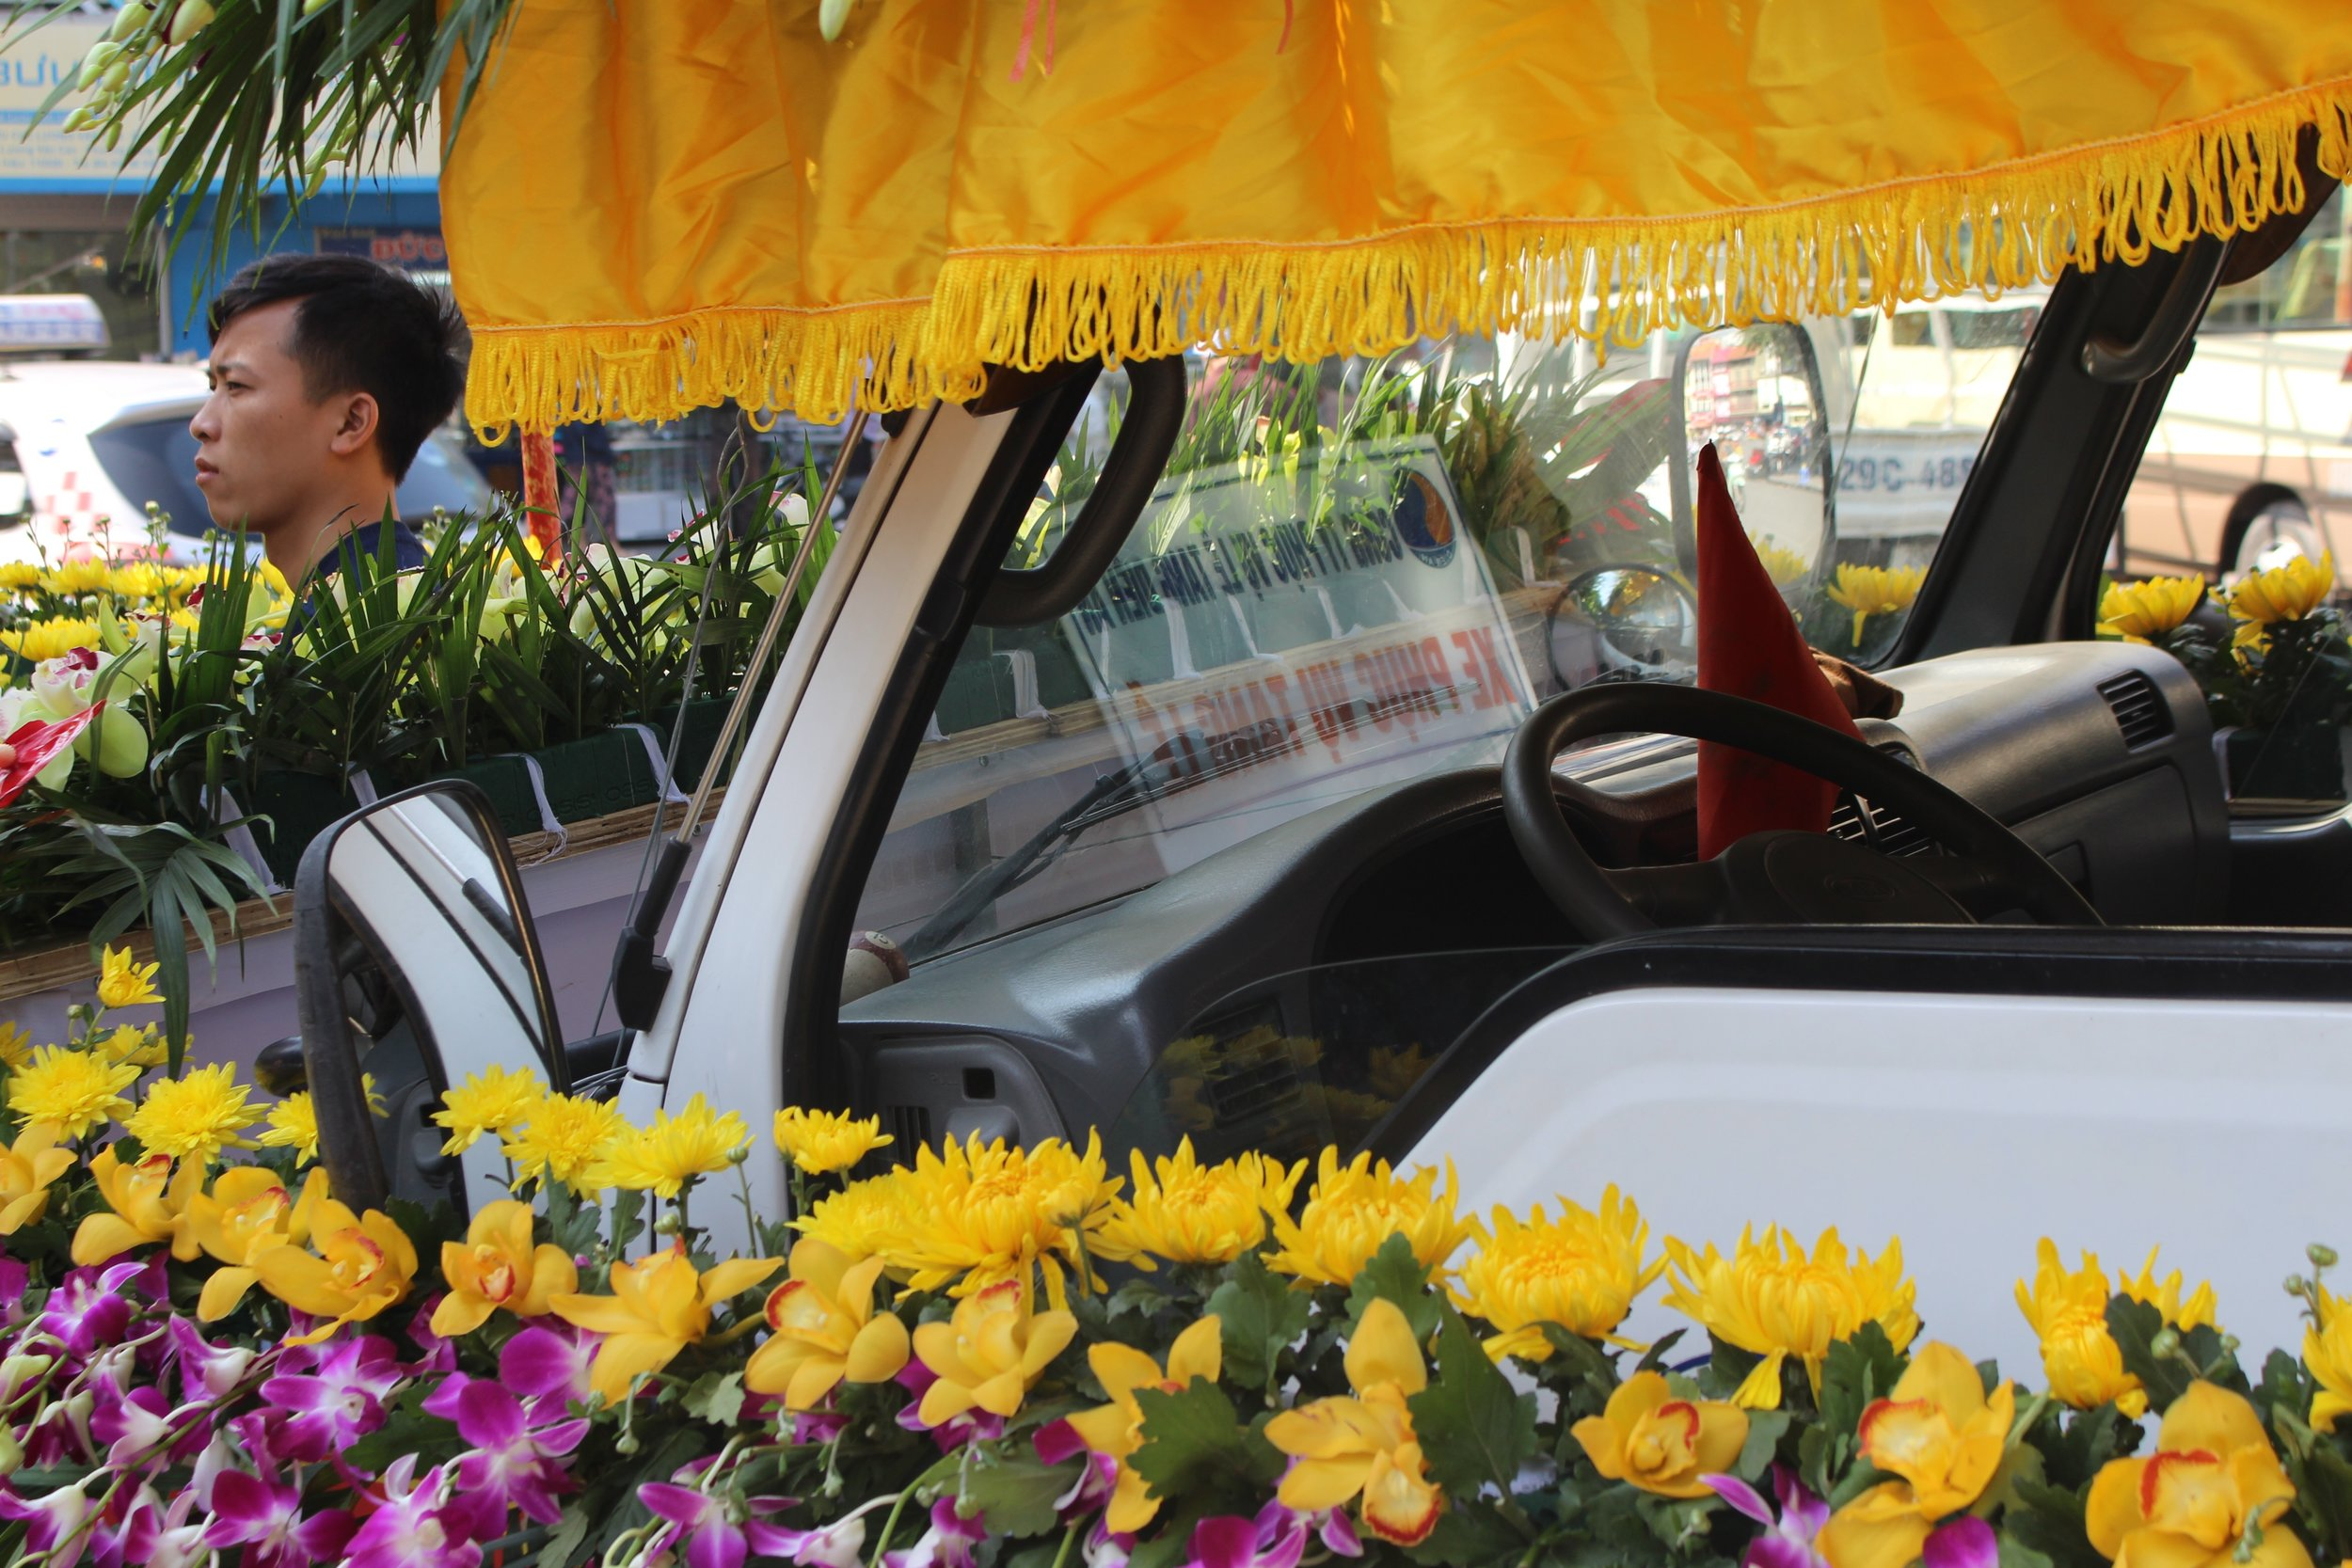 A funeral procession, Hanoi